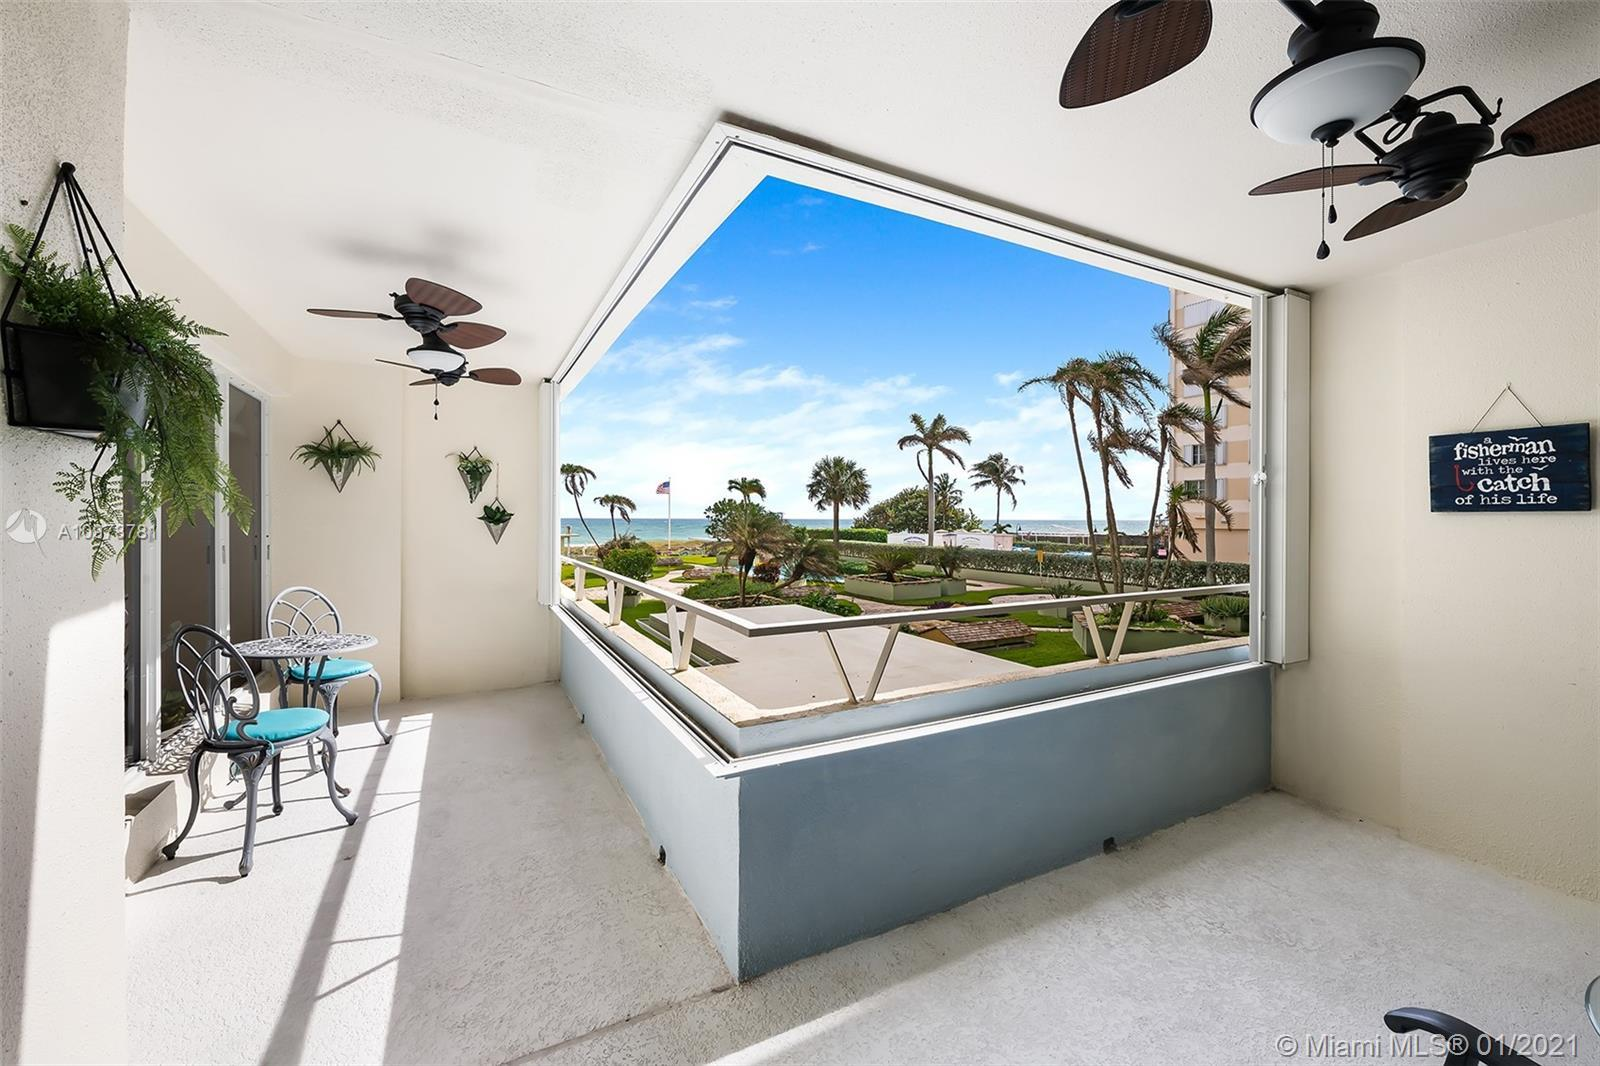 RARELY AVAILABLE! Beautiful 3 bedroom, 3 full bath direct ocean view condo! This unit has been compl